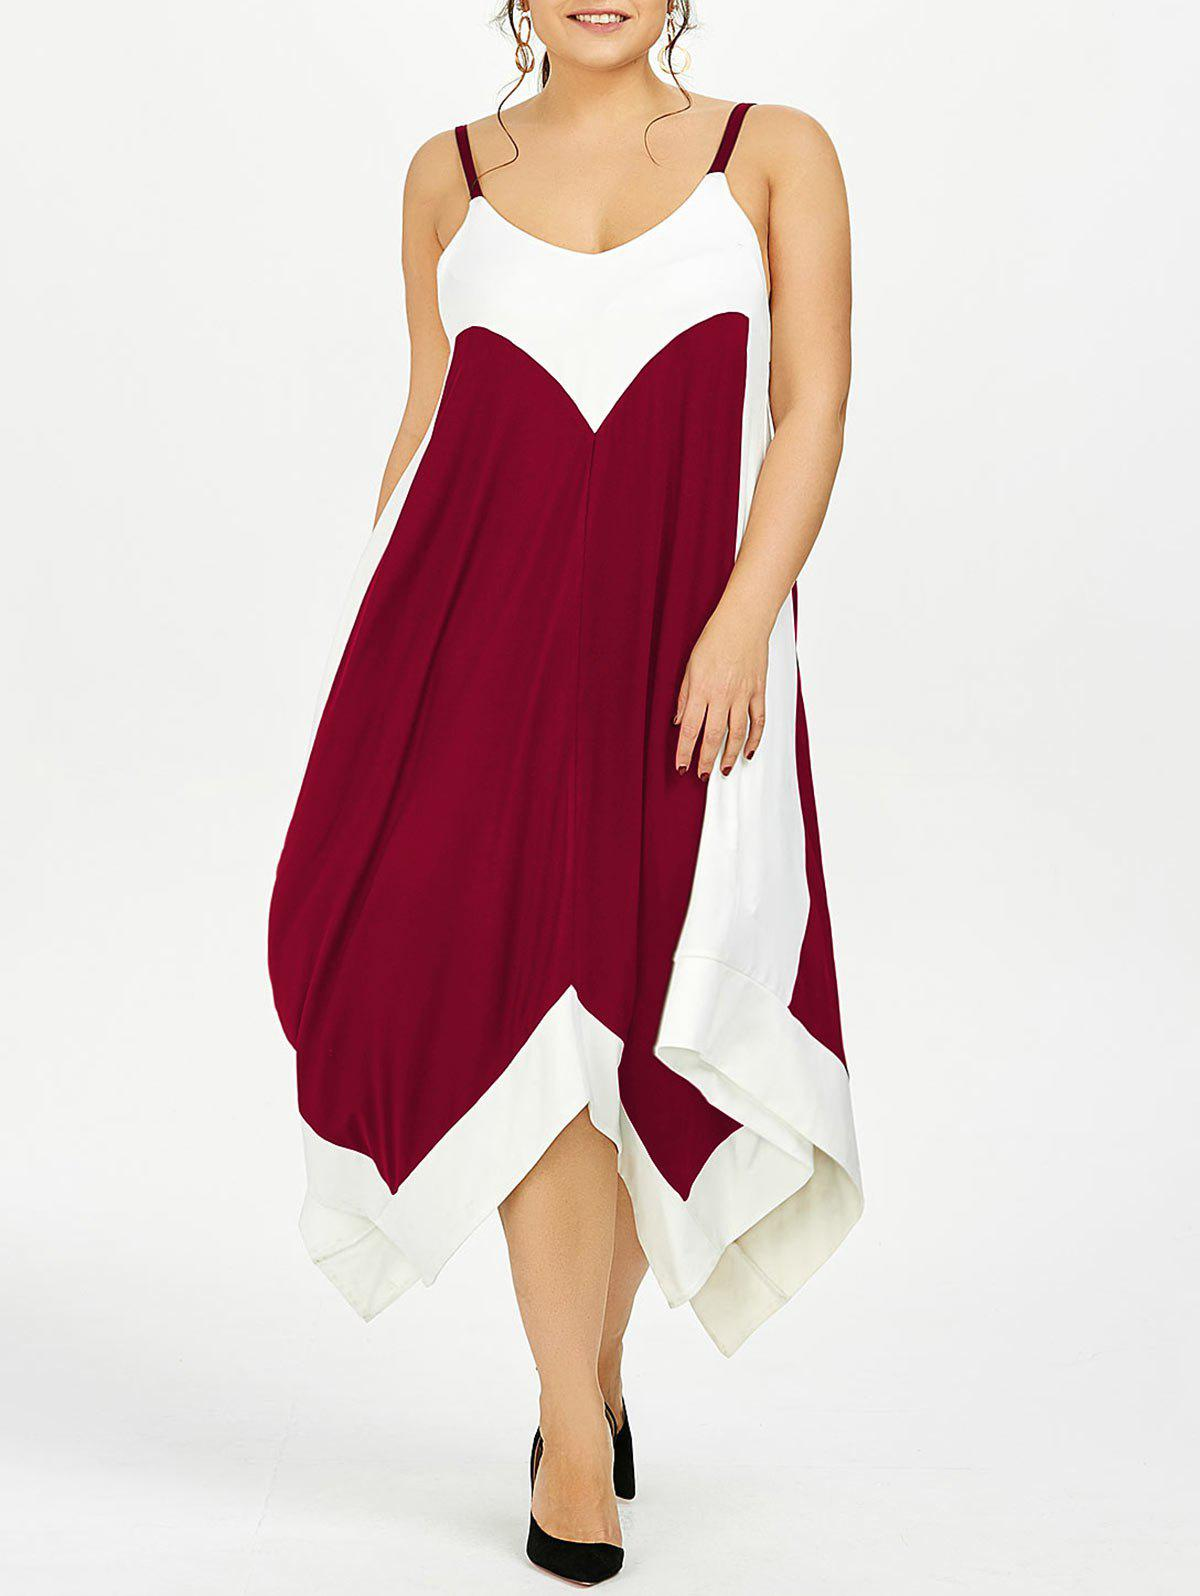 Plus Size Handkerchief Flowy Two Tone Slip DressWOMEN<br><br>Size: 4XL; Color: WINE RED; Style: Casual; Material: Polyester,Spandex; Silhouette: Asymmetrical; Dresses Length: Ankle-Length; Neckline: Spaghetti Strap; Sleeve Length: Sleeveless; Pattern Type: Solid; With Belt: No; Season: Summer; Weight: 0.4200kg; Package Contents: 1 x Dress;